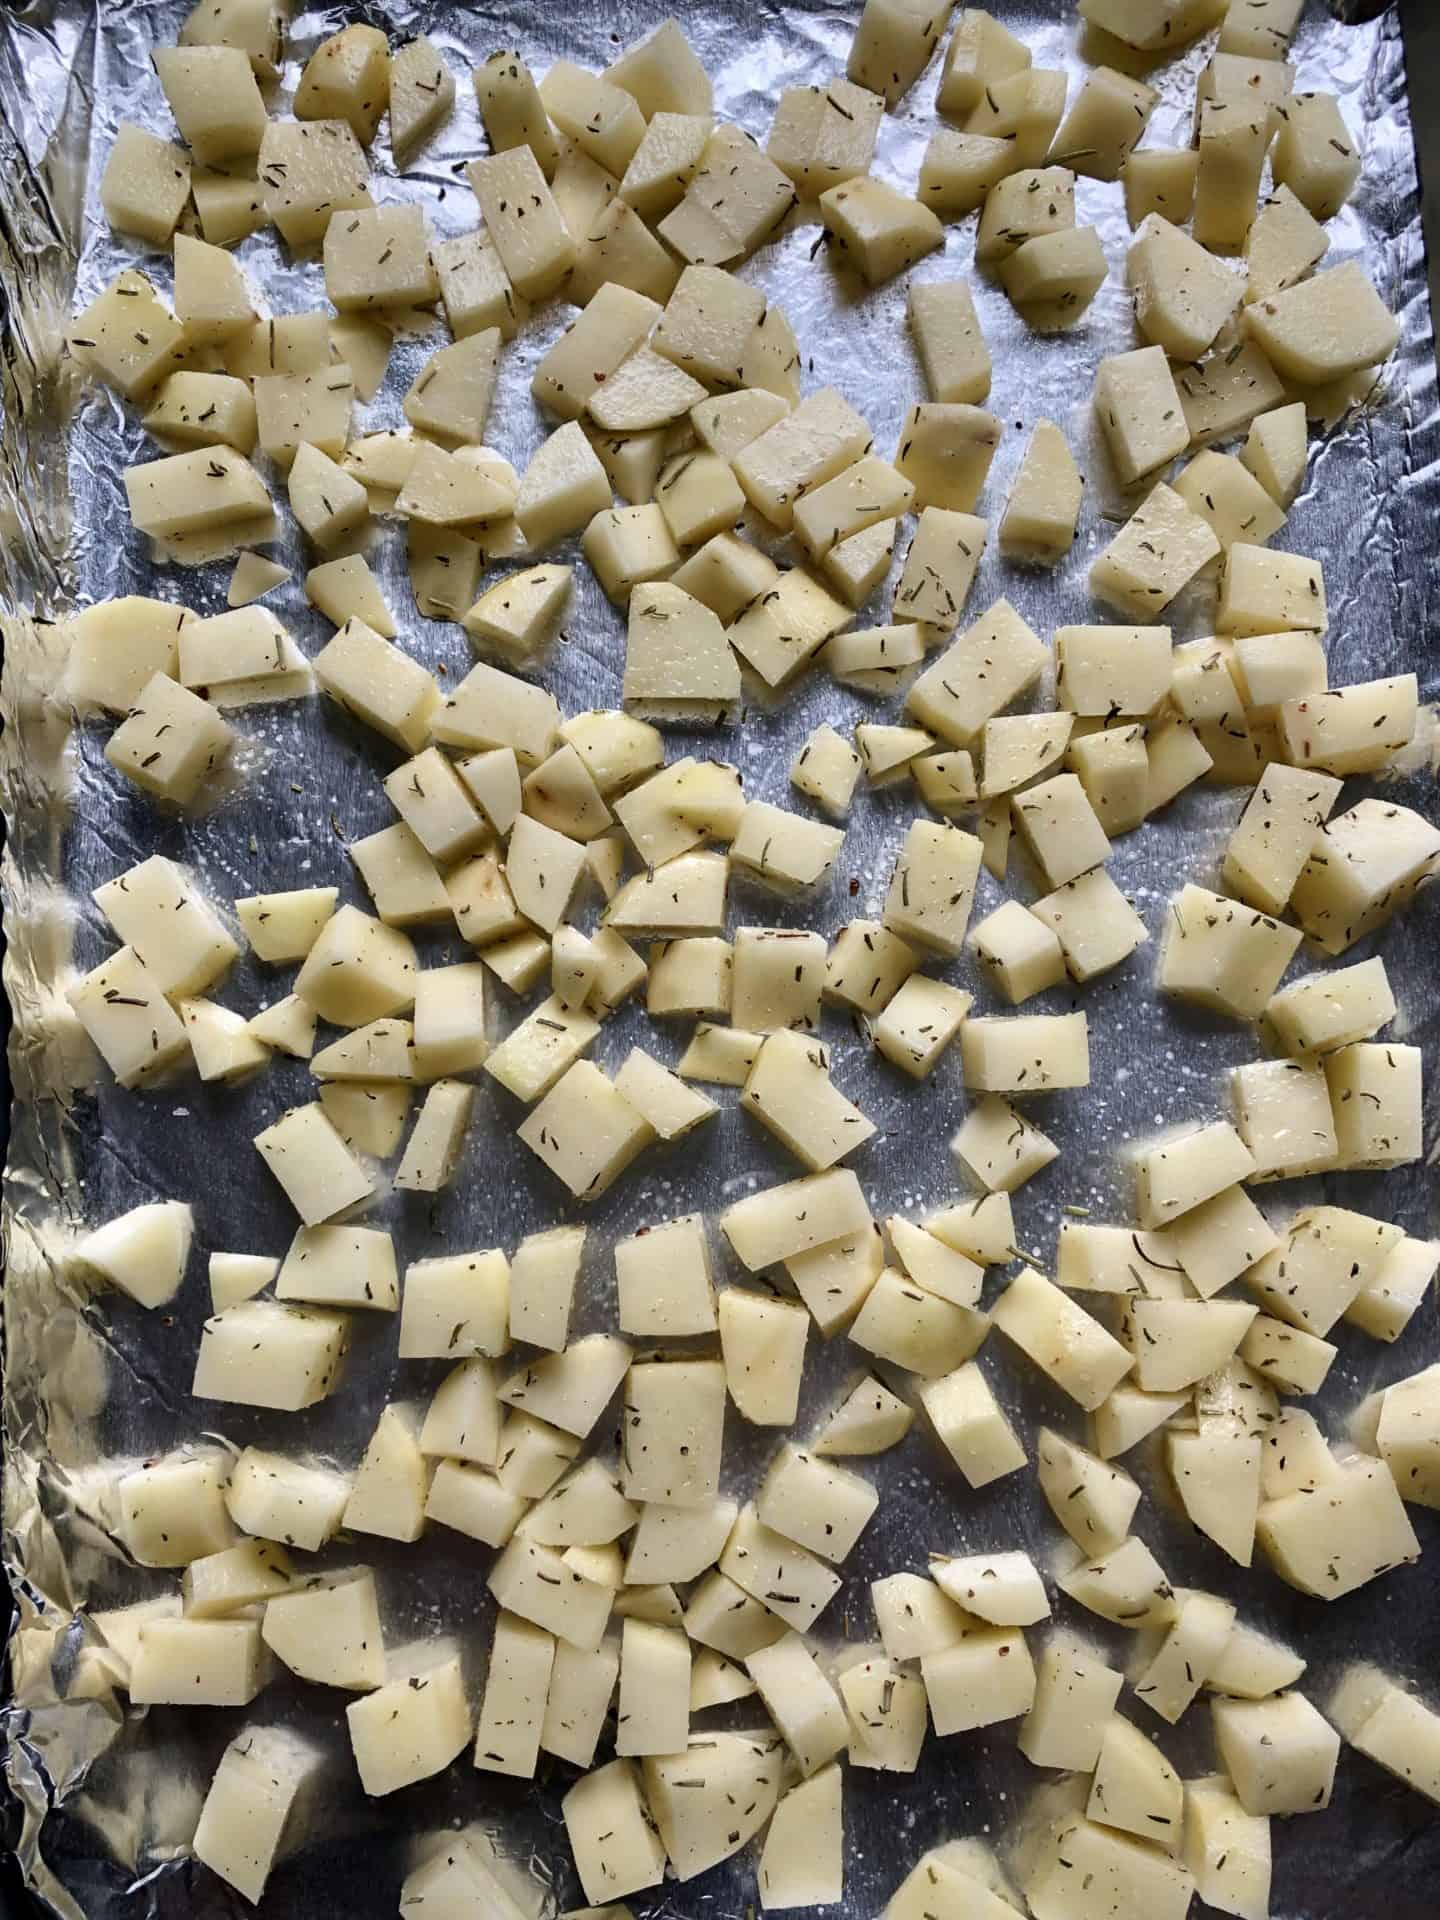 diced potatoes uncooked on baking sheet